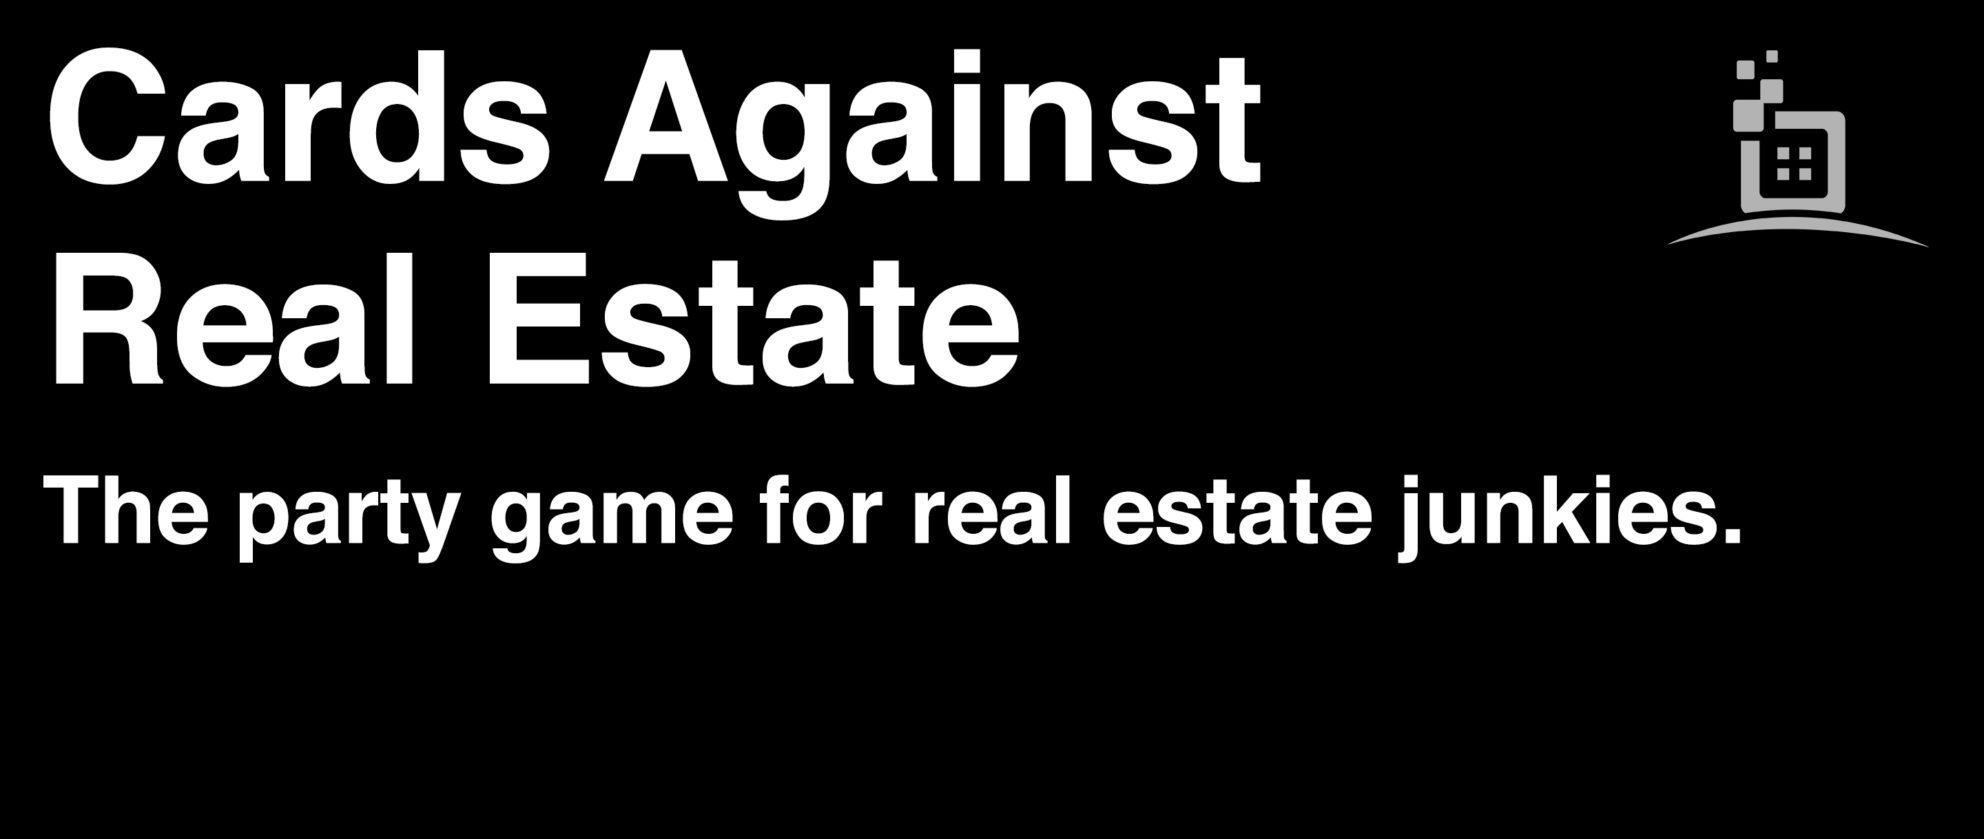 cards against real estate